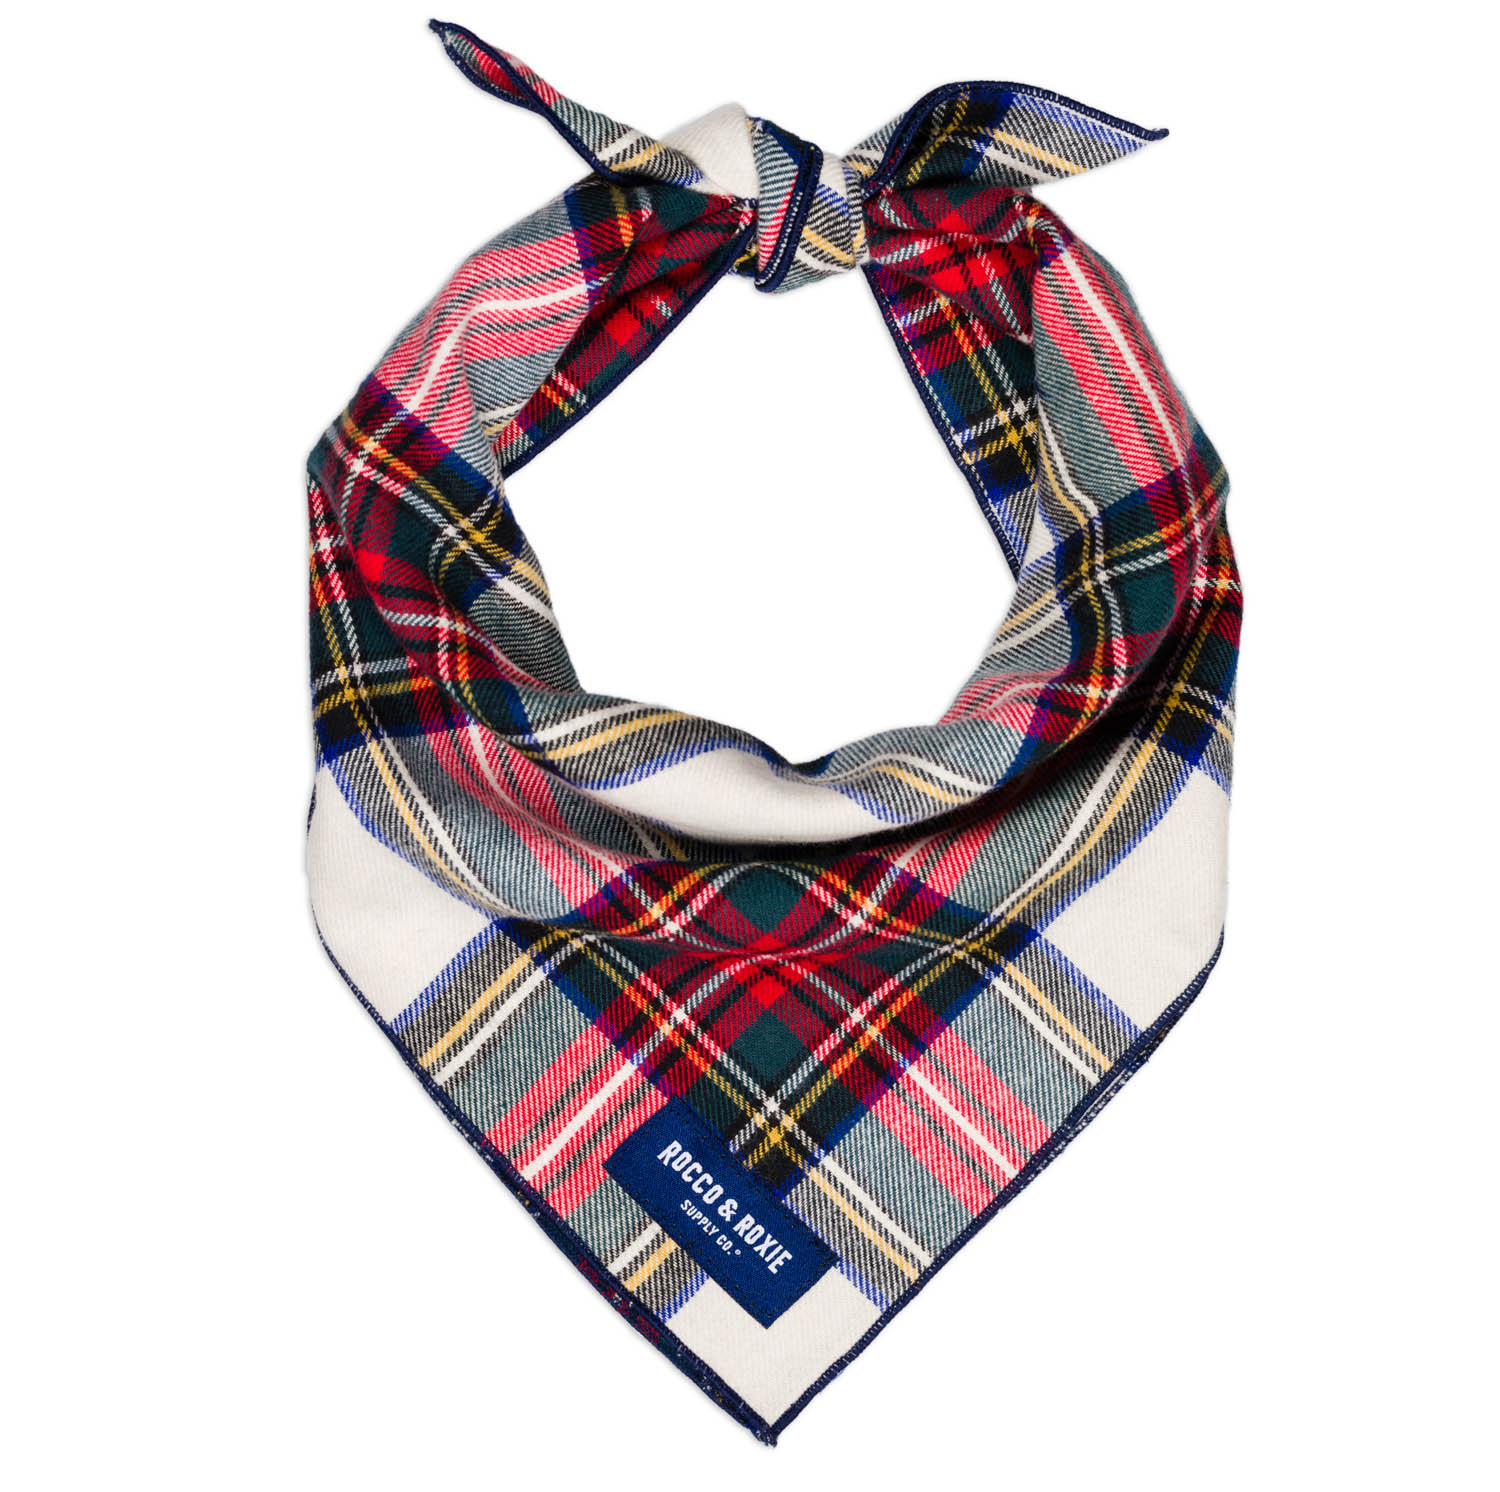 Plaid bandana for dogs